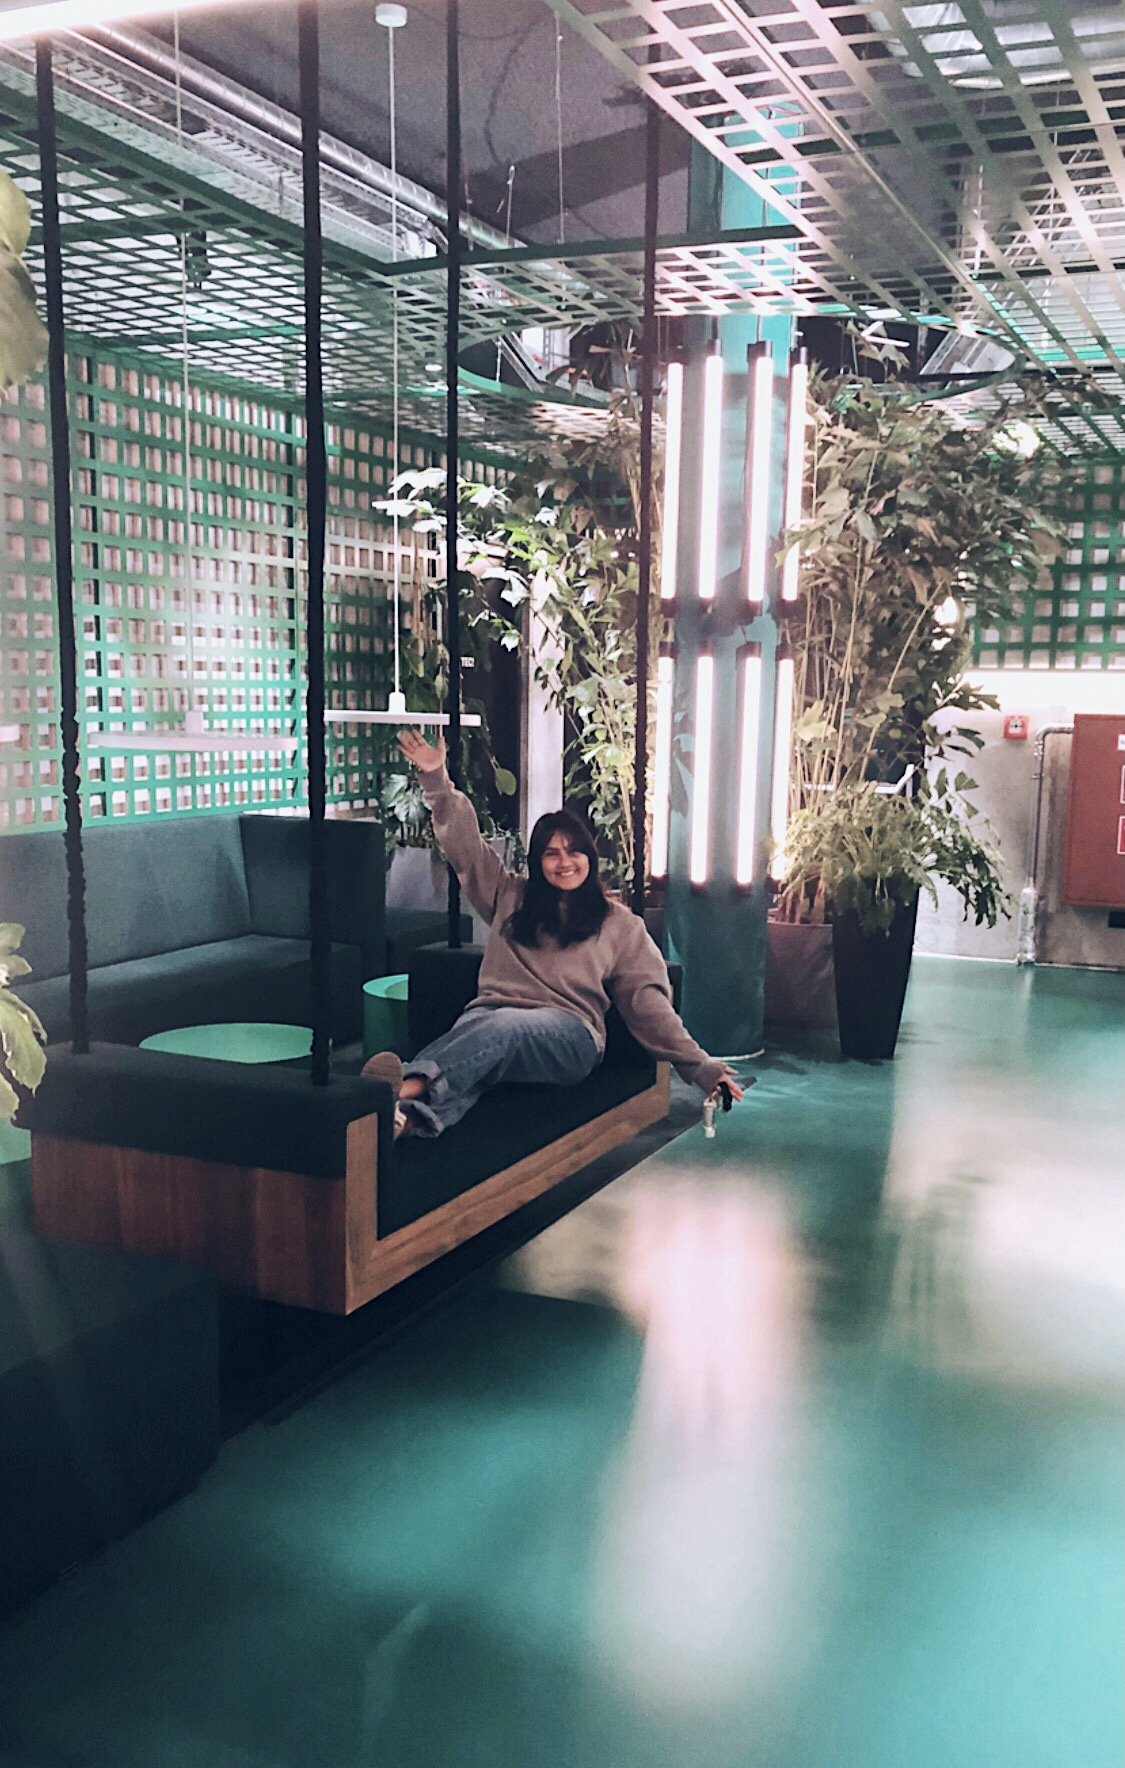 woman sits on couch in dimly lit lobby with decorative lighting and plants